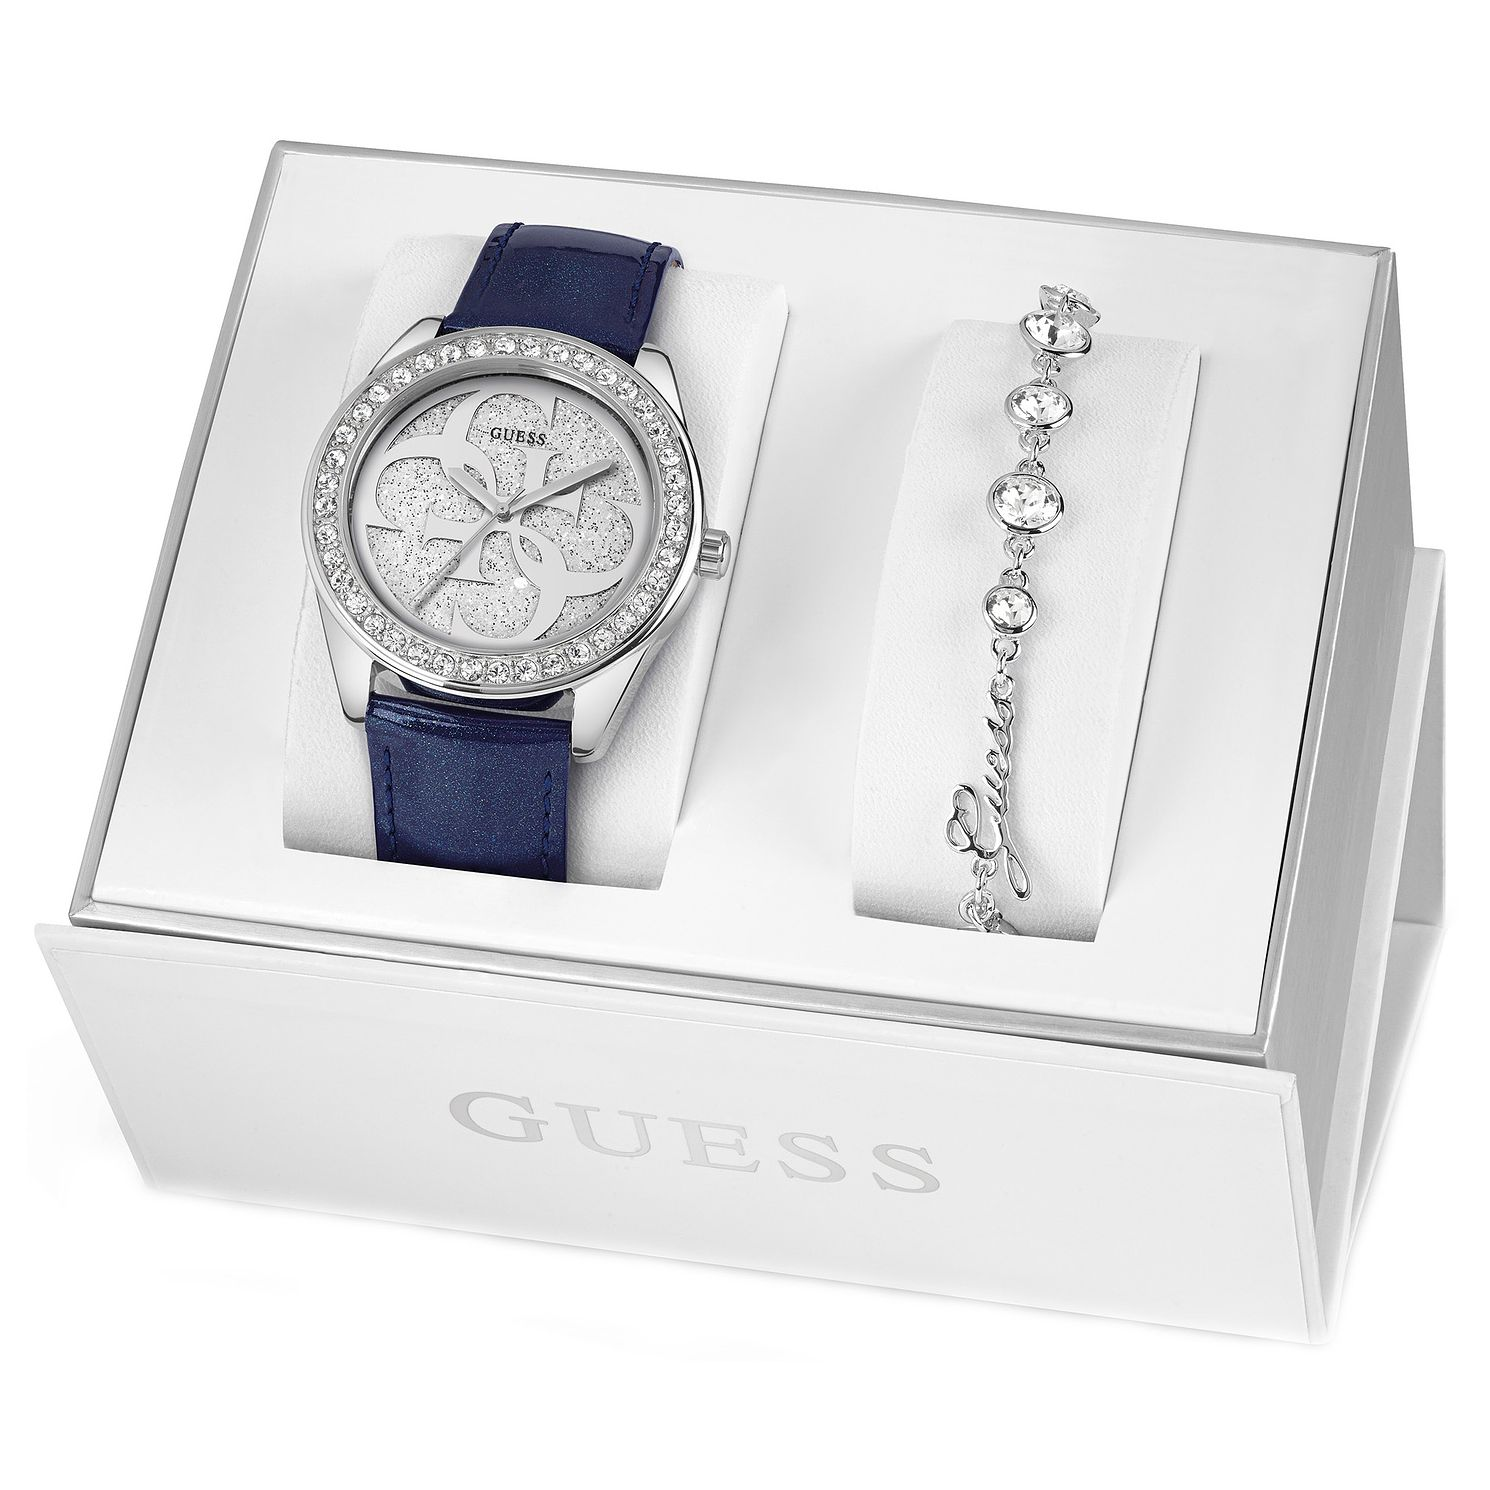 Guess Ladies' Watch & Bracelet Gift Set - Product number 8407878